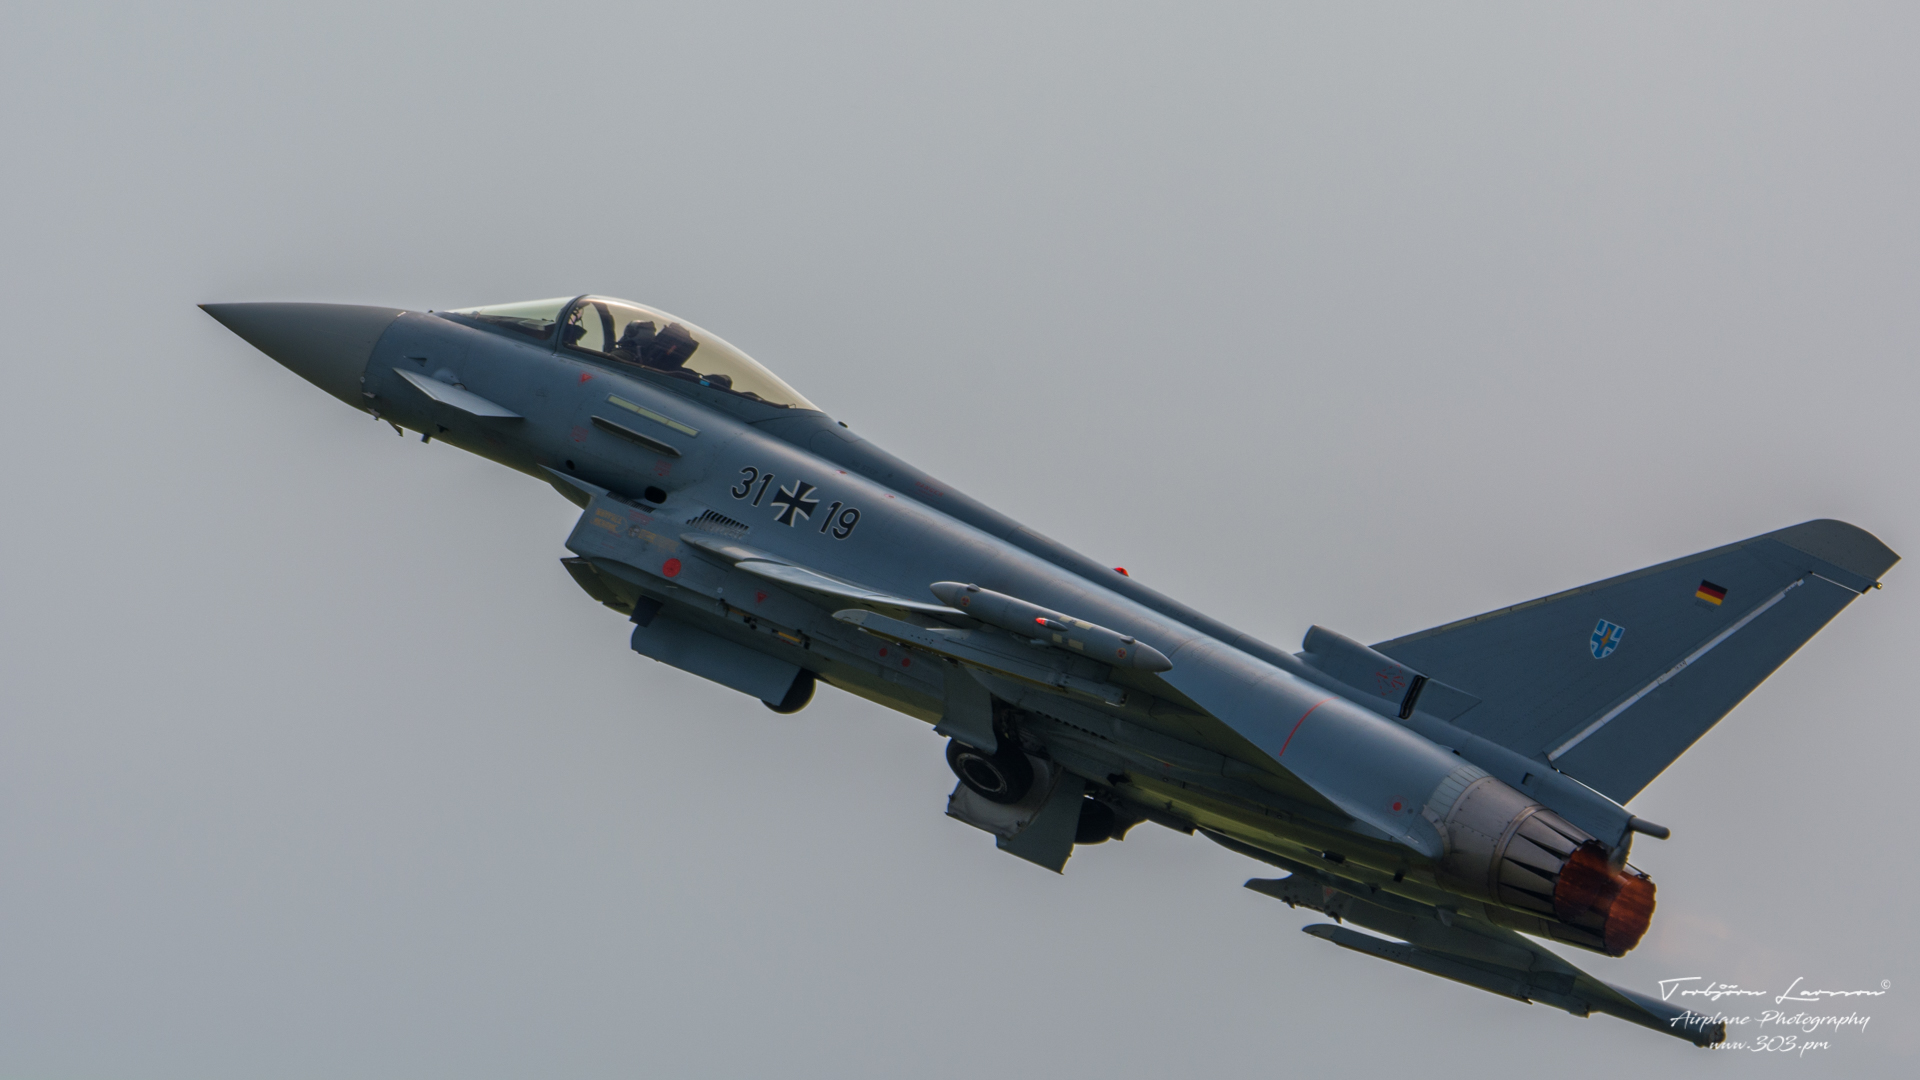 Eurofighter Typhoon (Airbus Defense & Space)